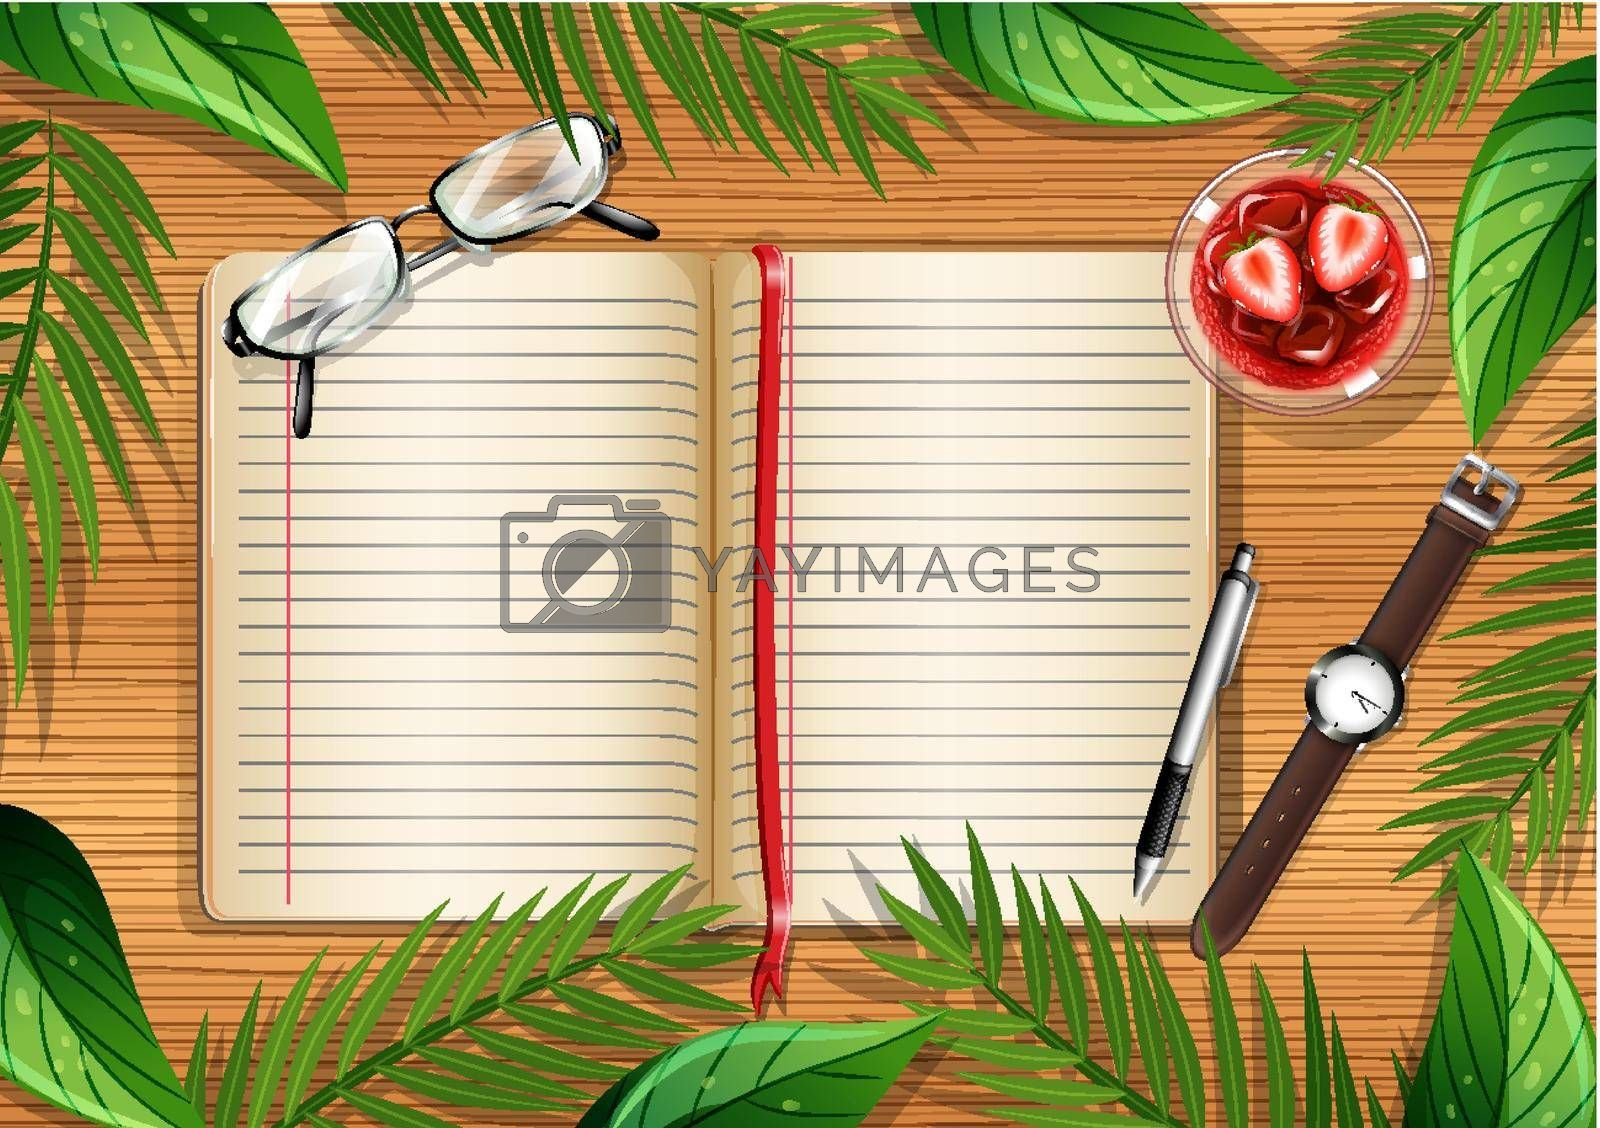 Top view of wooden table with blank page of book and office objects and leaves element illustration